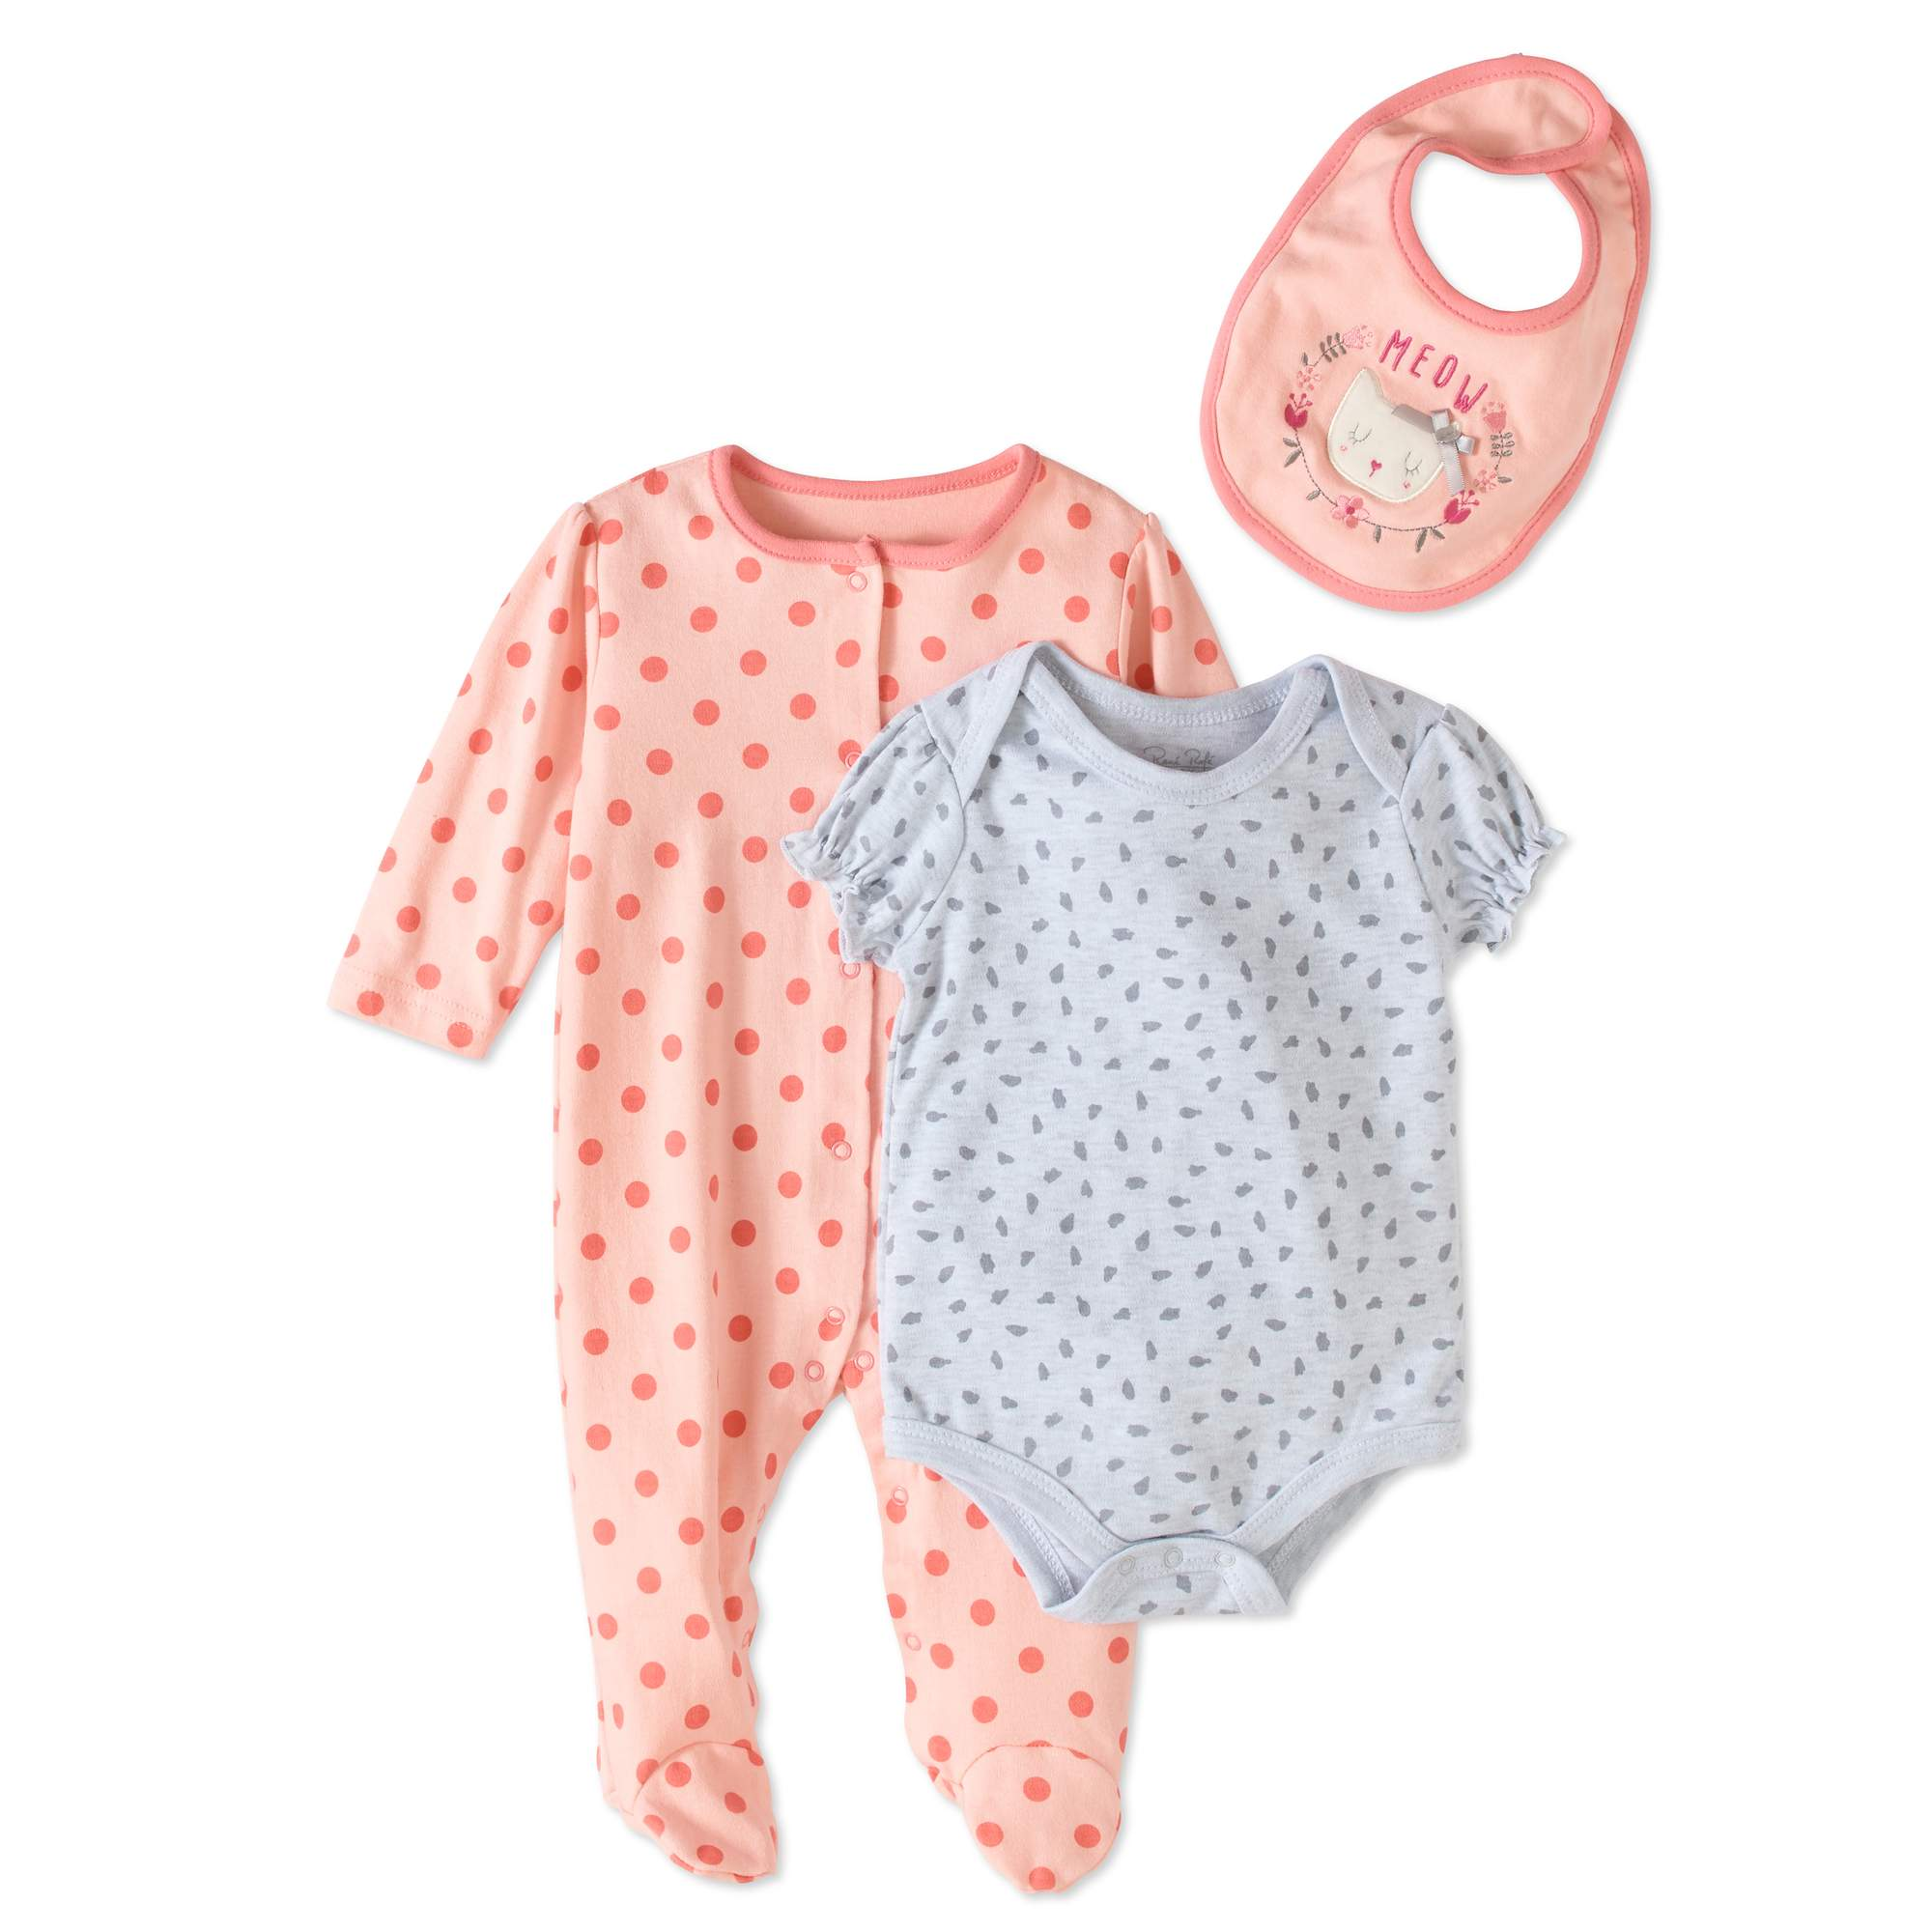 Rene Rofe Newborn Baby Girl Take-Me-Home, 3pc Set